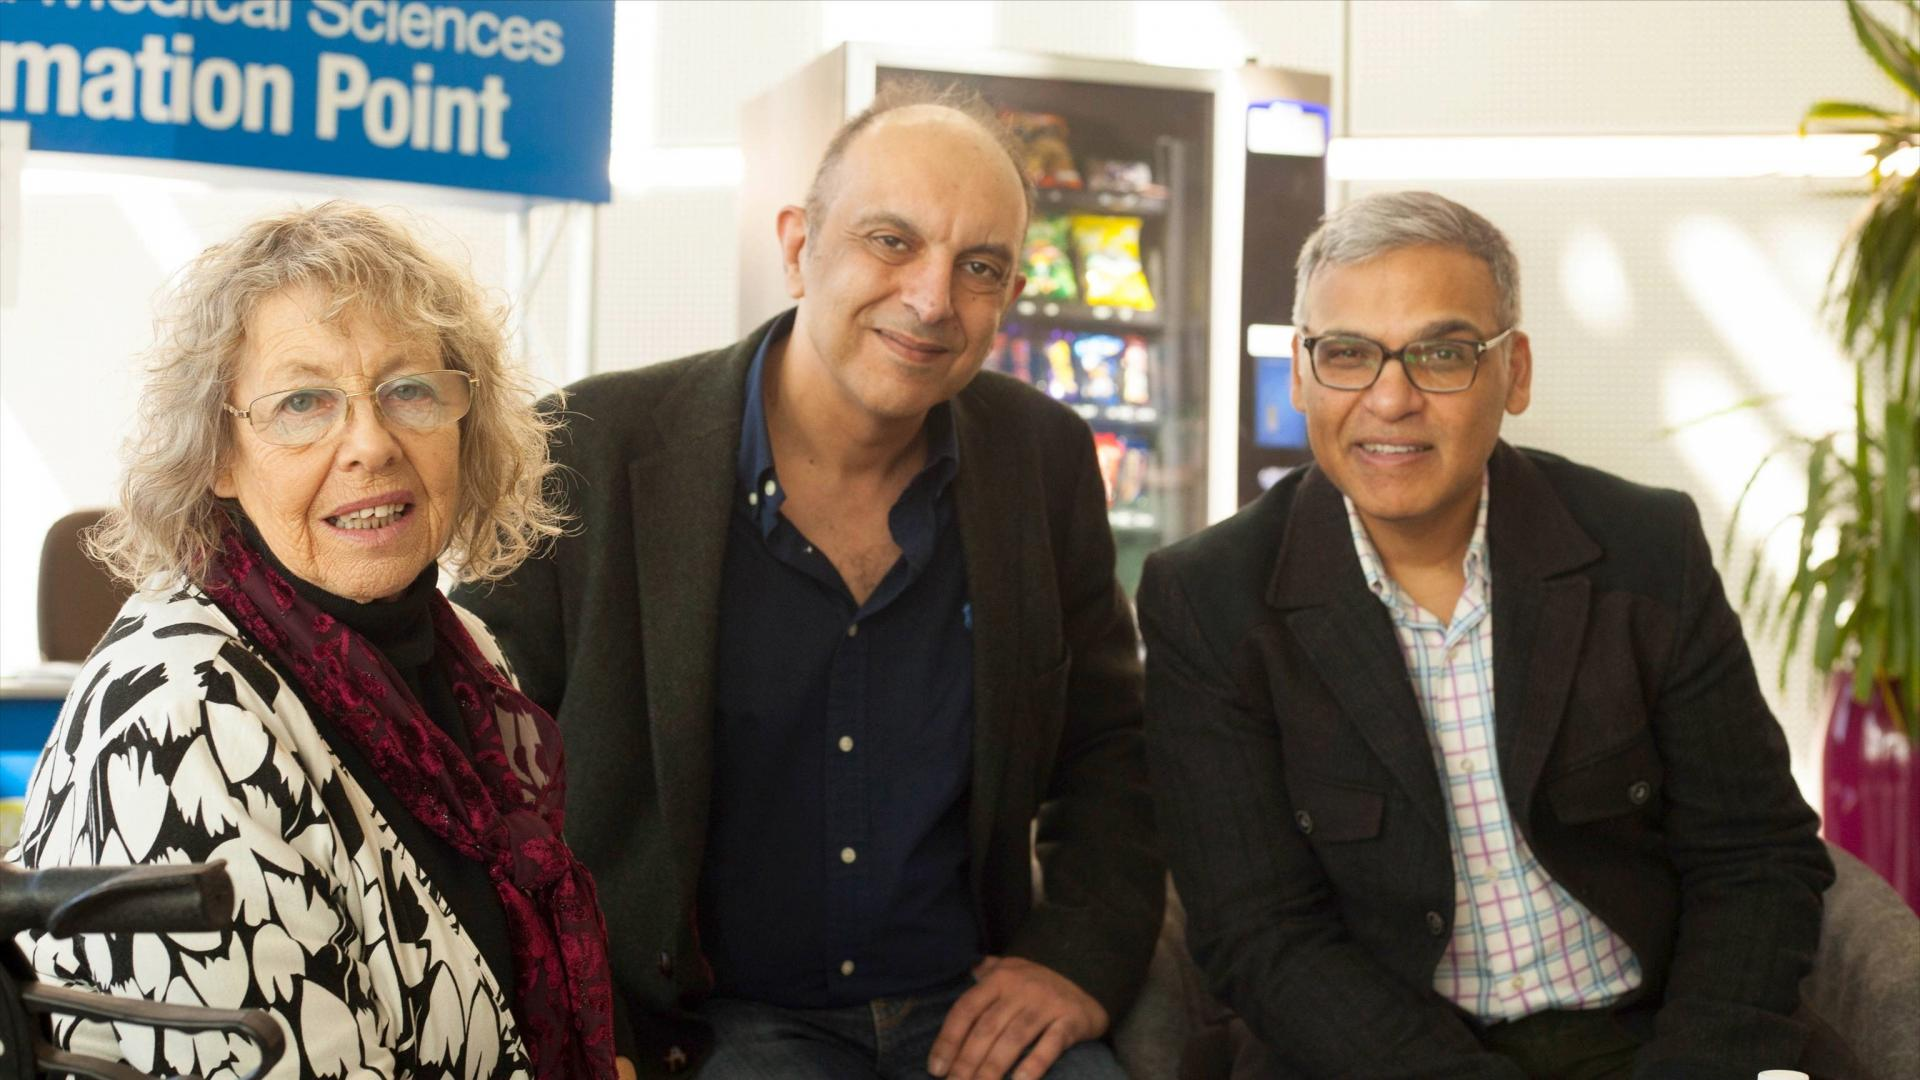 June, who has Parkinson's, with Dr Mohammed Shoaib and Dr Mahmoud Iravan - researchers working on the relationship between nicotine and Parkinson's.